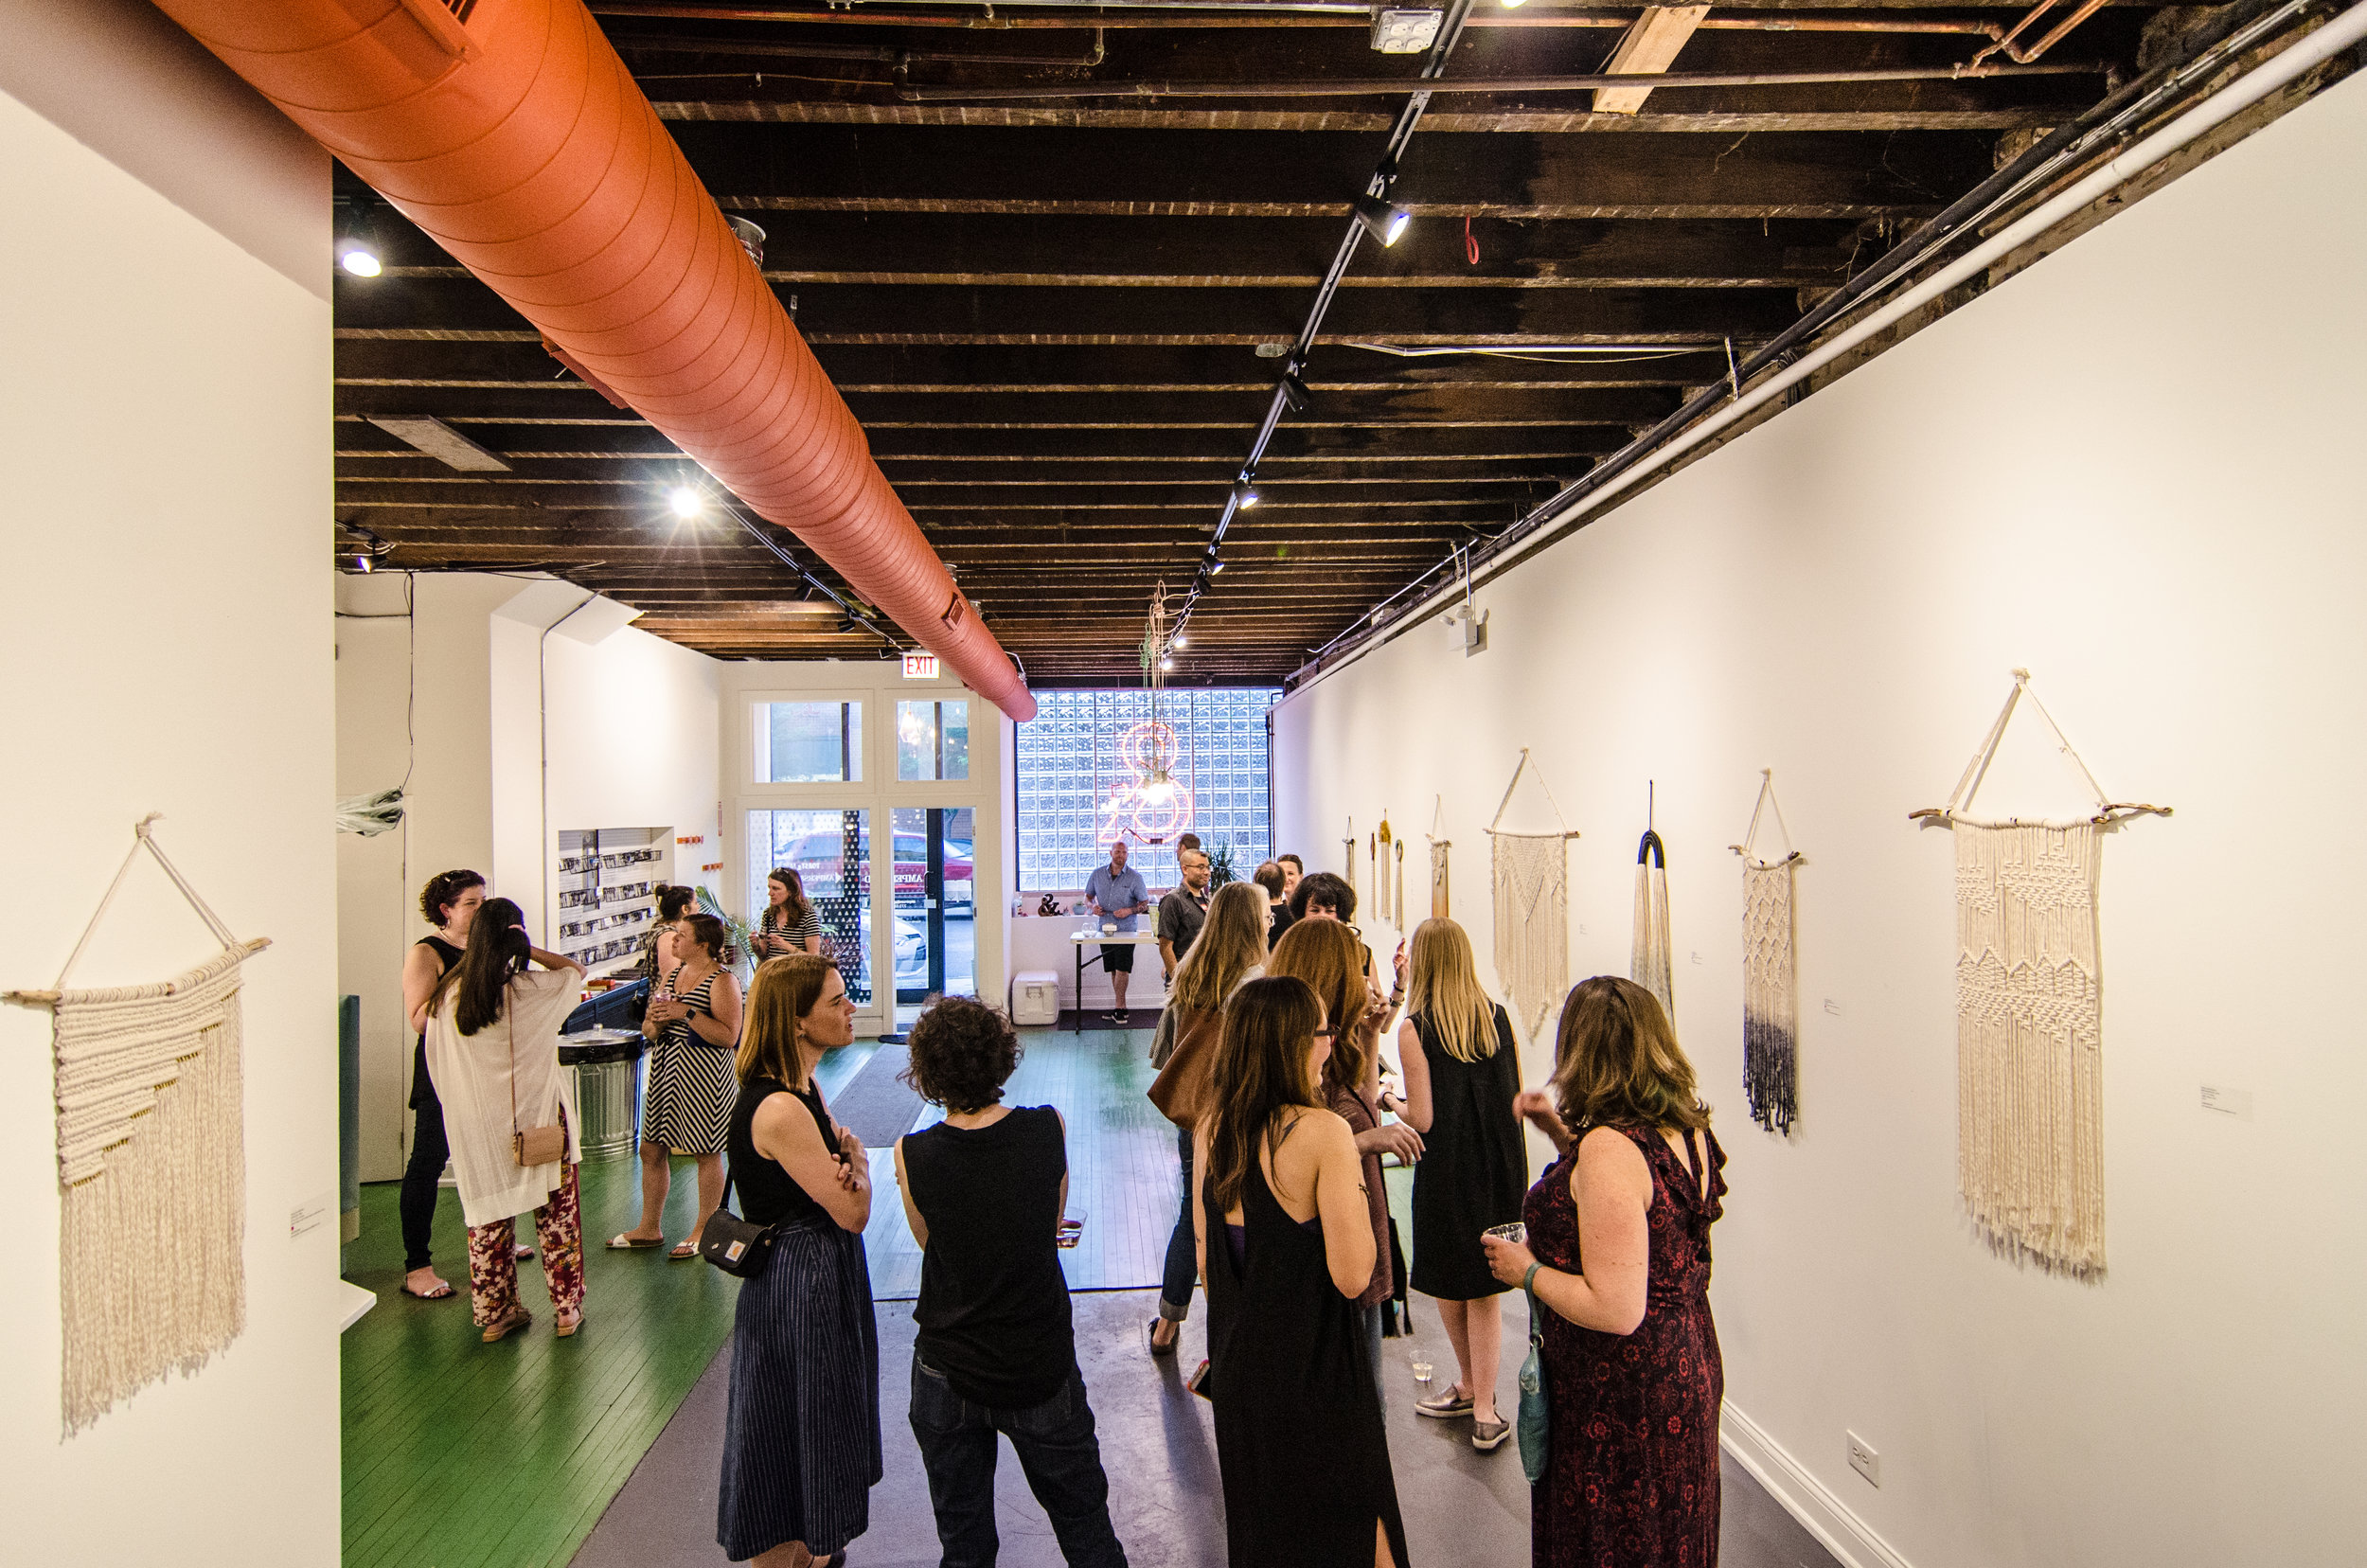 decorations - We love seeing how you spruce up the joint. Please note the following about event decor.All decorations must be approved in advance. Reach out in advance to chat with us so we can give you the green light.Because we are an art gallery as well as an event space, we do not allow tape on the walls.For safety reasons, nothing can be hung from light fixtures and there can be no open flames.If you plan to move furniture, we need to approve it and we'll take care of it per the space rental agreement fees.